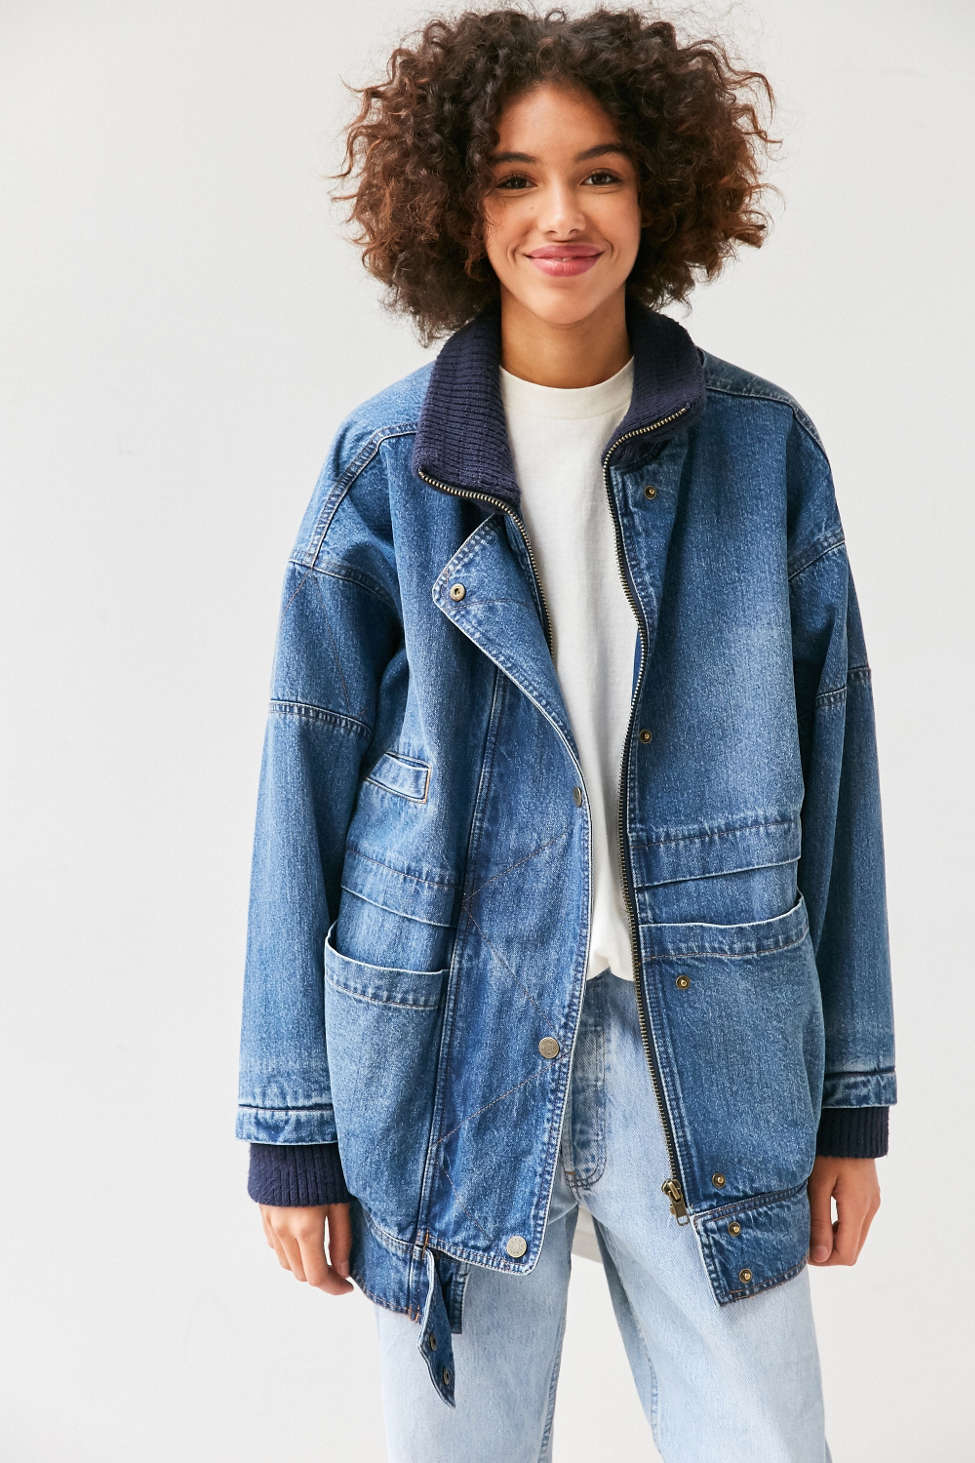 http://www.urbanoutfitters.com/urban/catalog/productdetail.jsp?id=40521742&category=W-COATS-DENIM